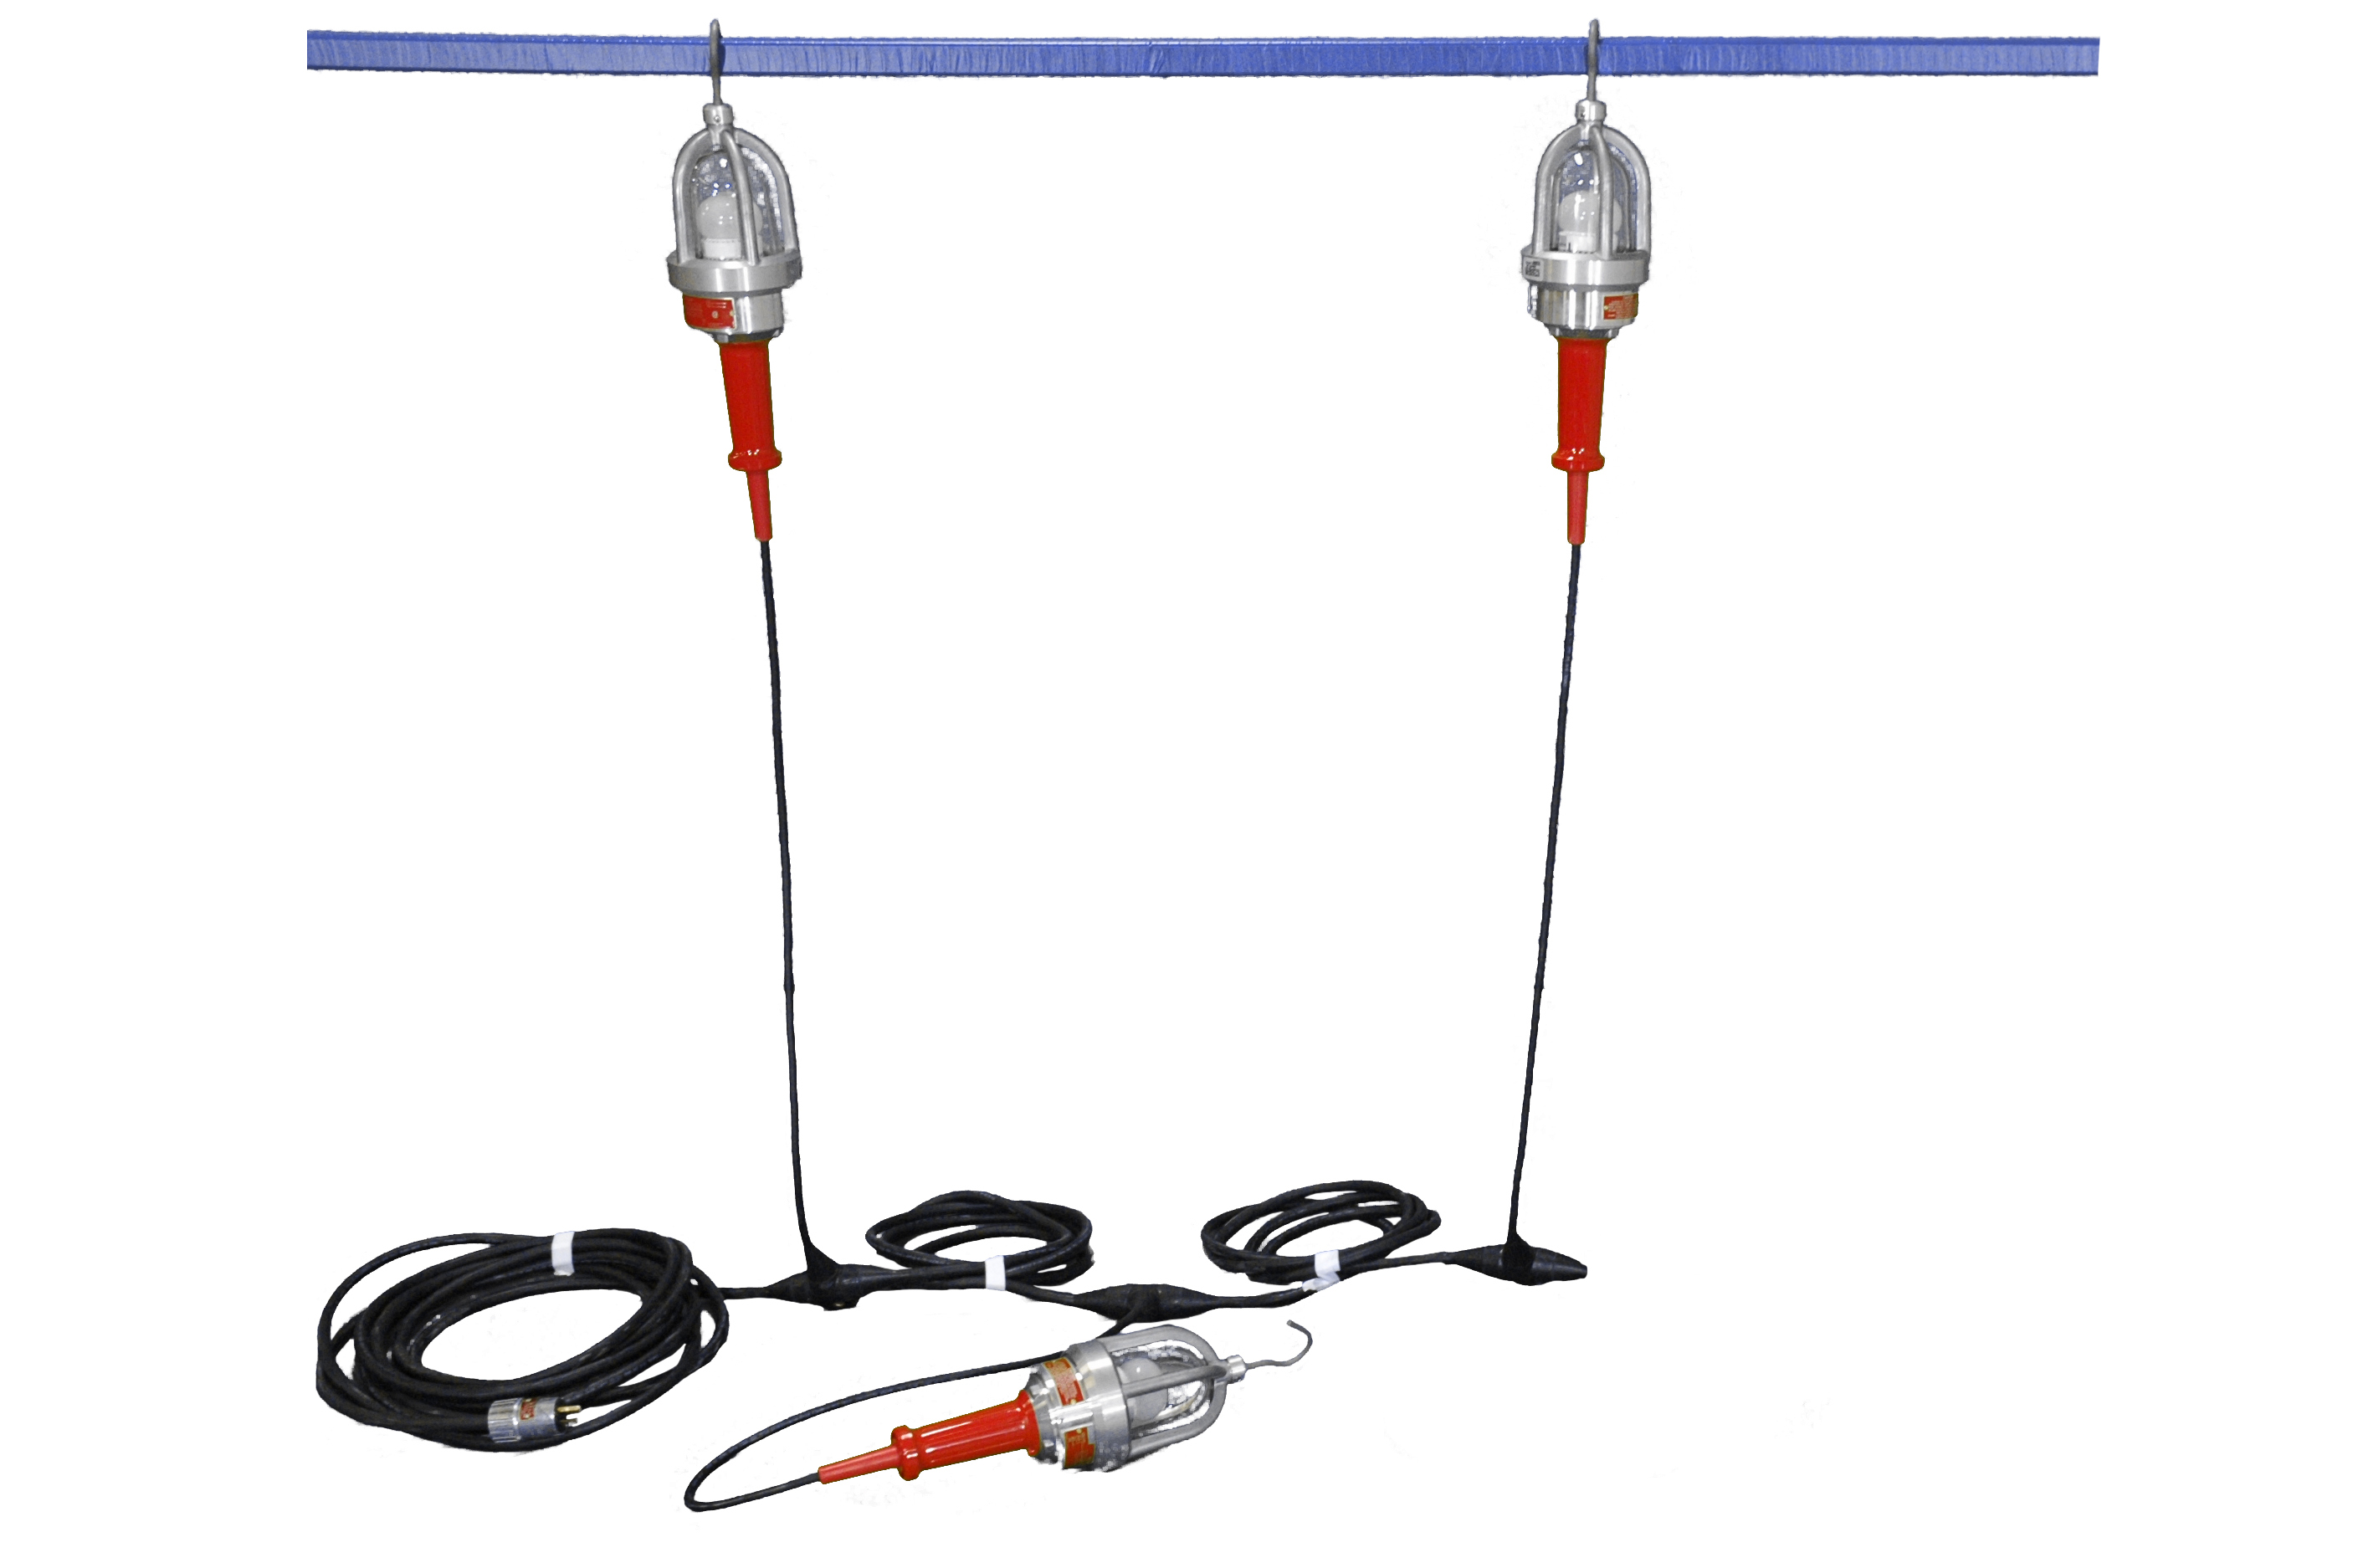 Explosion Proof Led String Lights : Larson Electronics Reveals New Class 1 Division 1 Explosion Proof LED String Lights